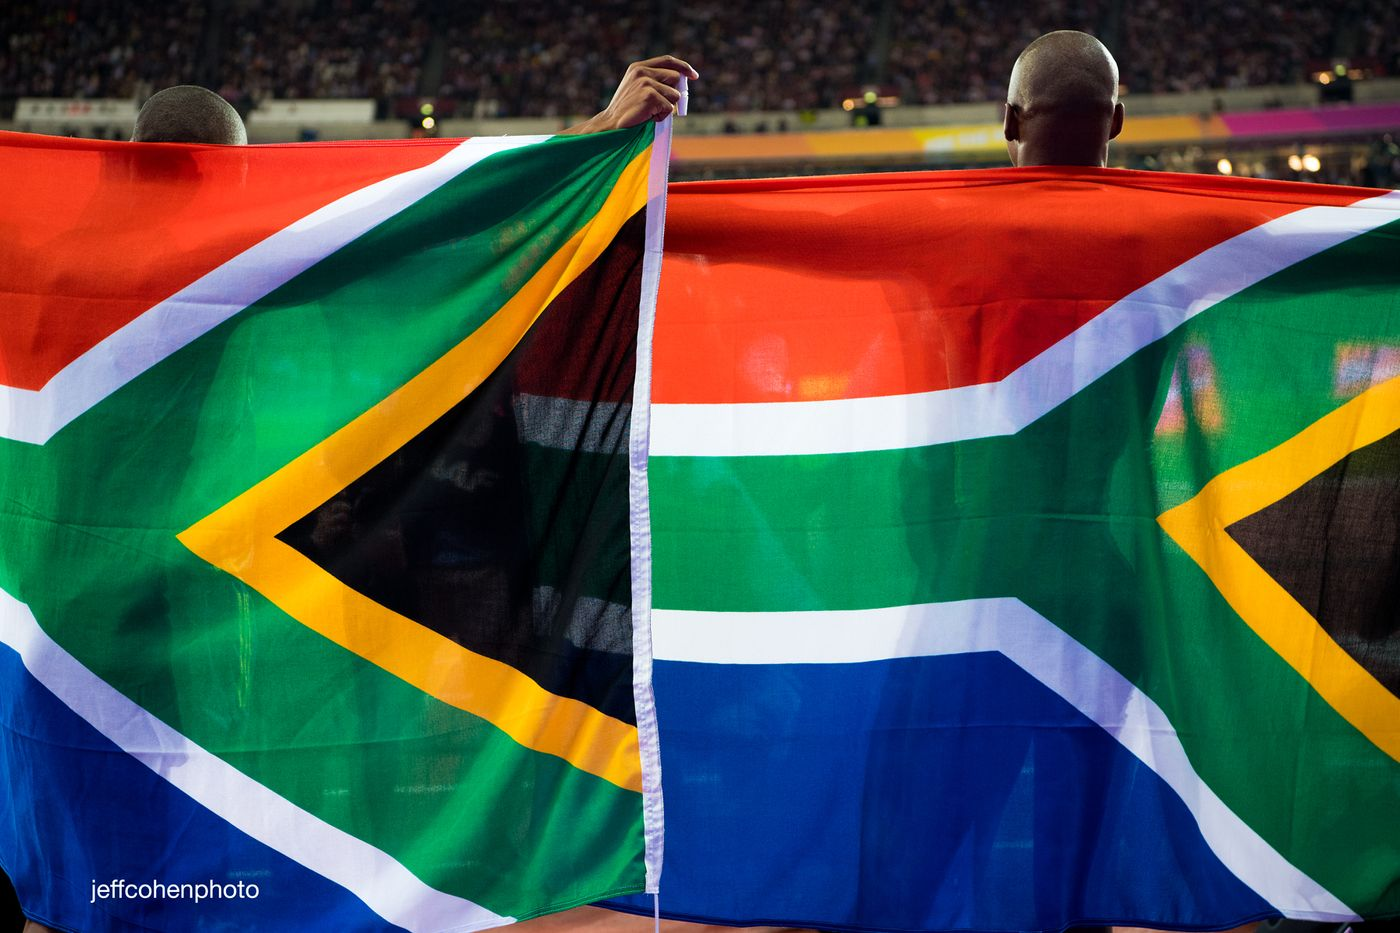 2017-IAAF-WC-London-night4017-2south-africa-ljm-flag--jeff-cohen-photo---web.jpg